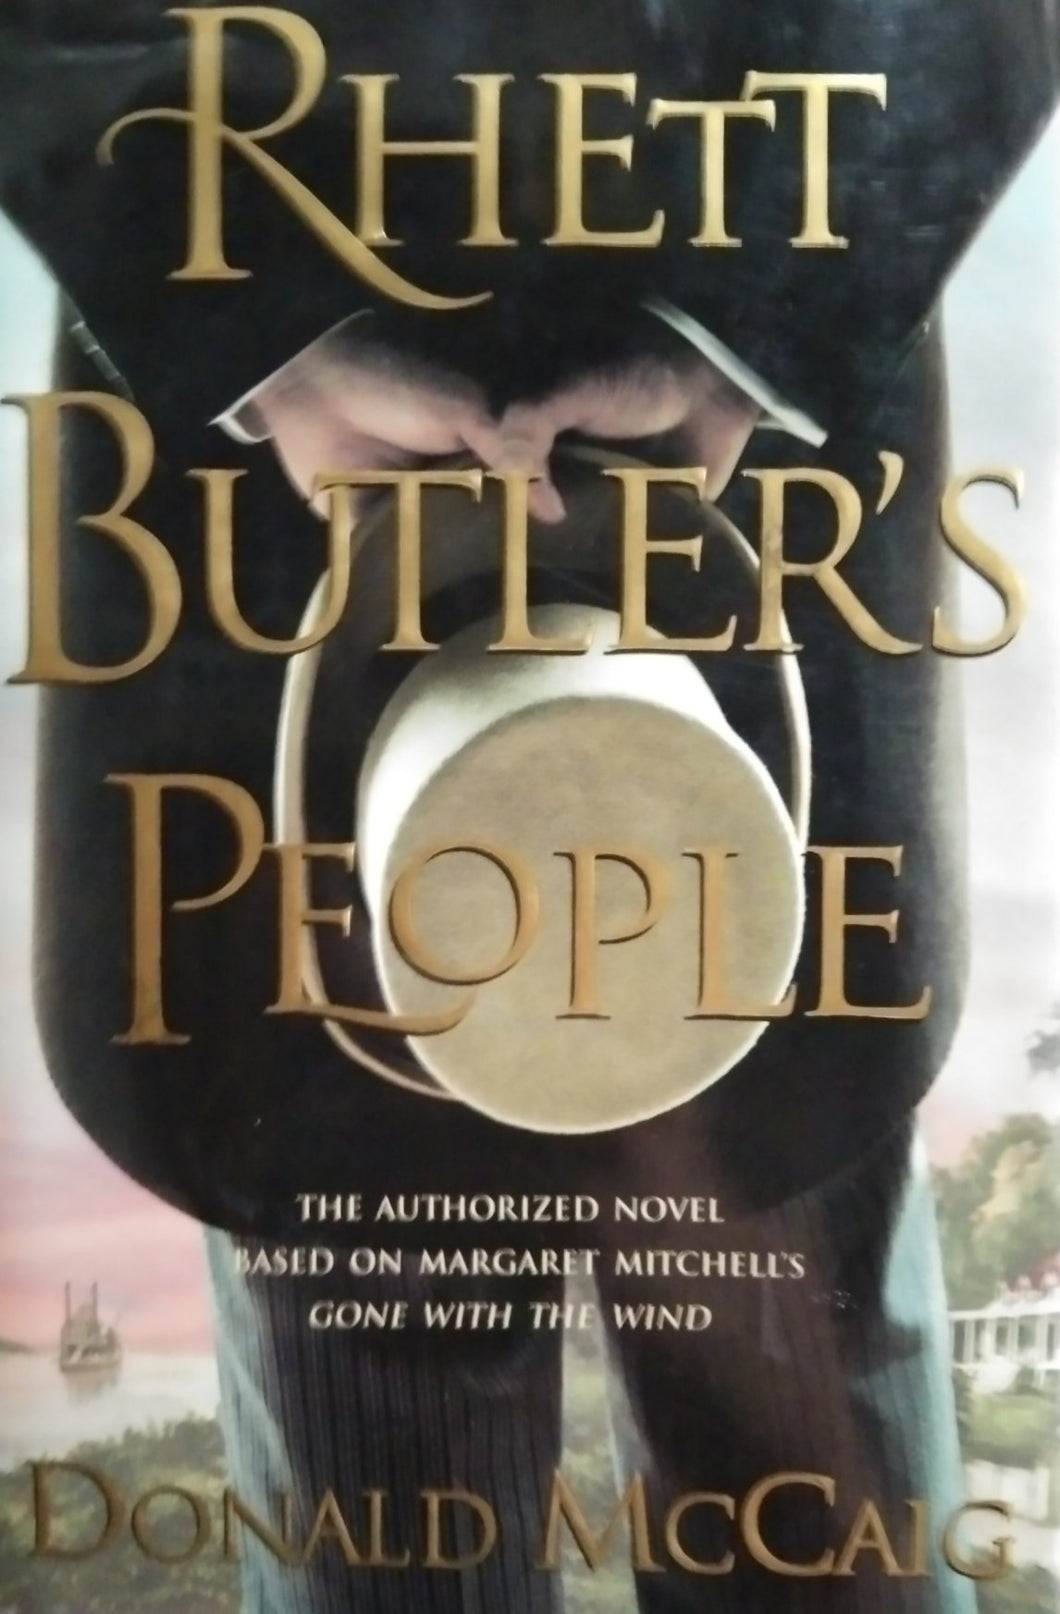 Rhett butlers people by donald mccaig